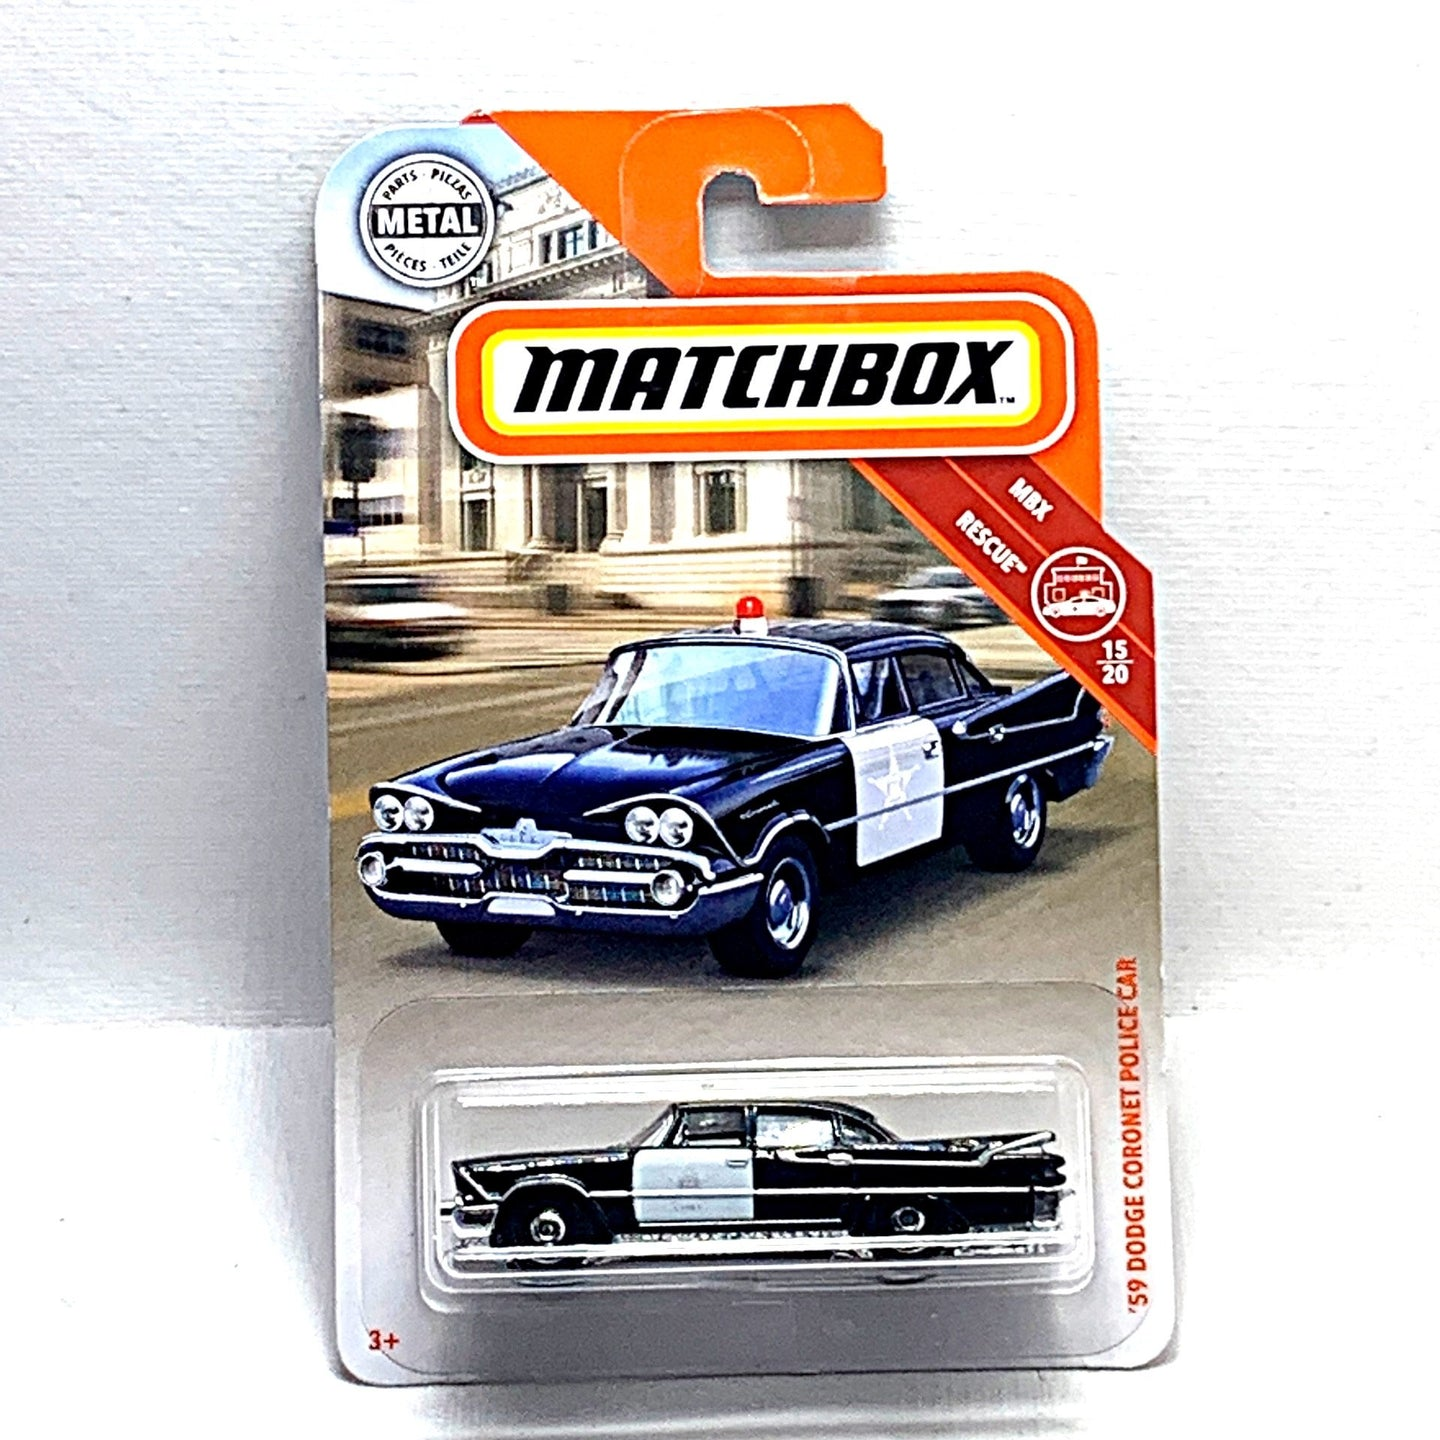 Matchbox 59 dodge coronet police car - Gonzo's Garage